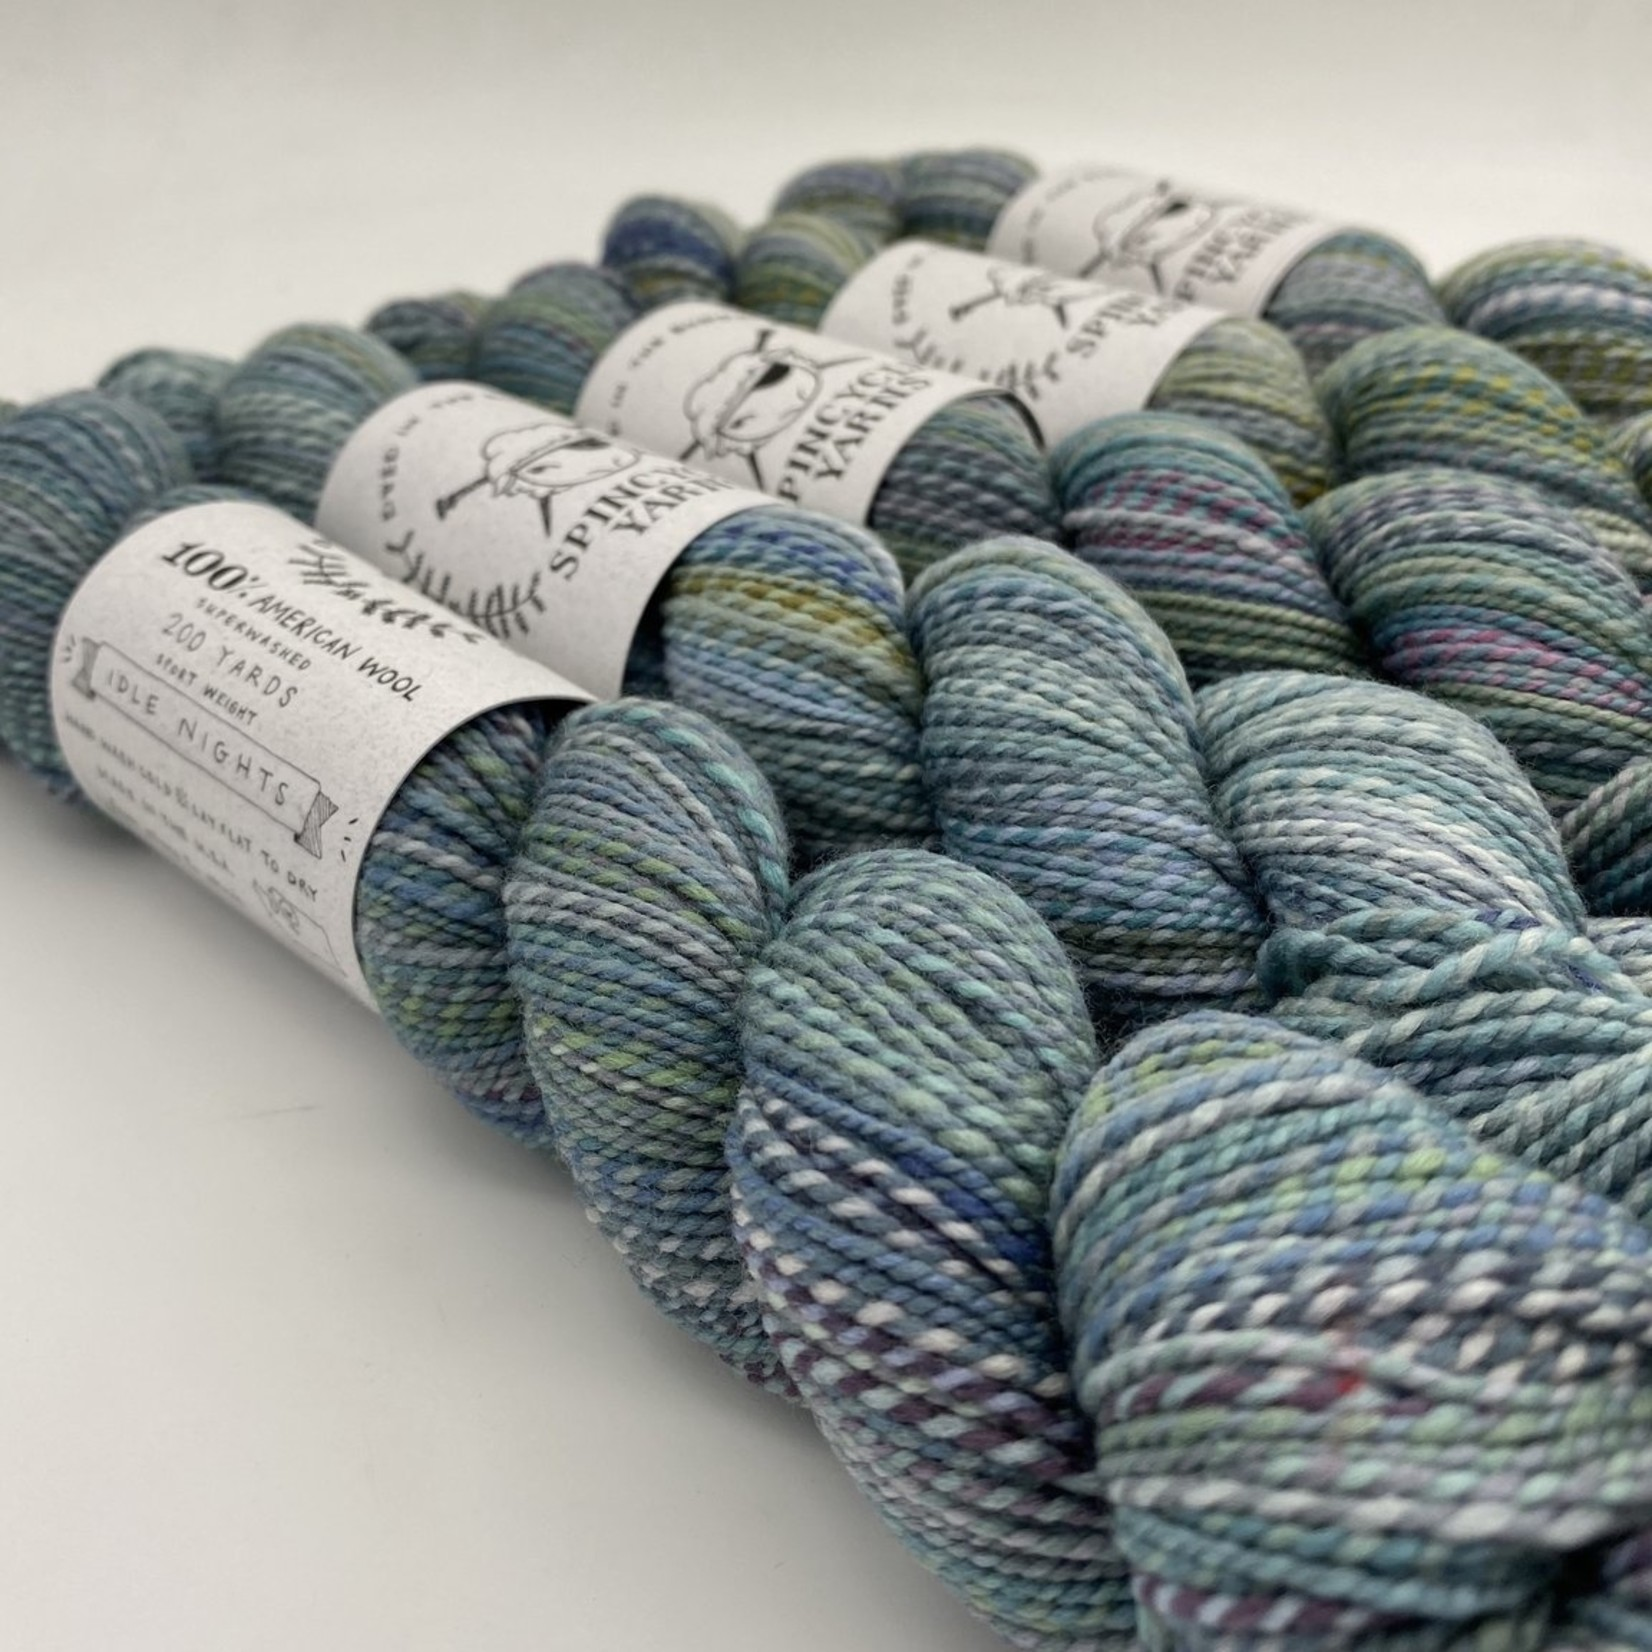 Spincycle Yarn Dyed in the Wool, Idle Nights